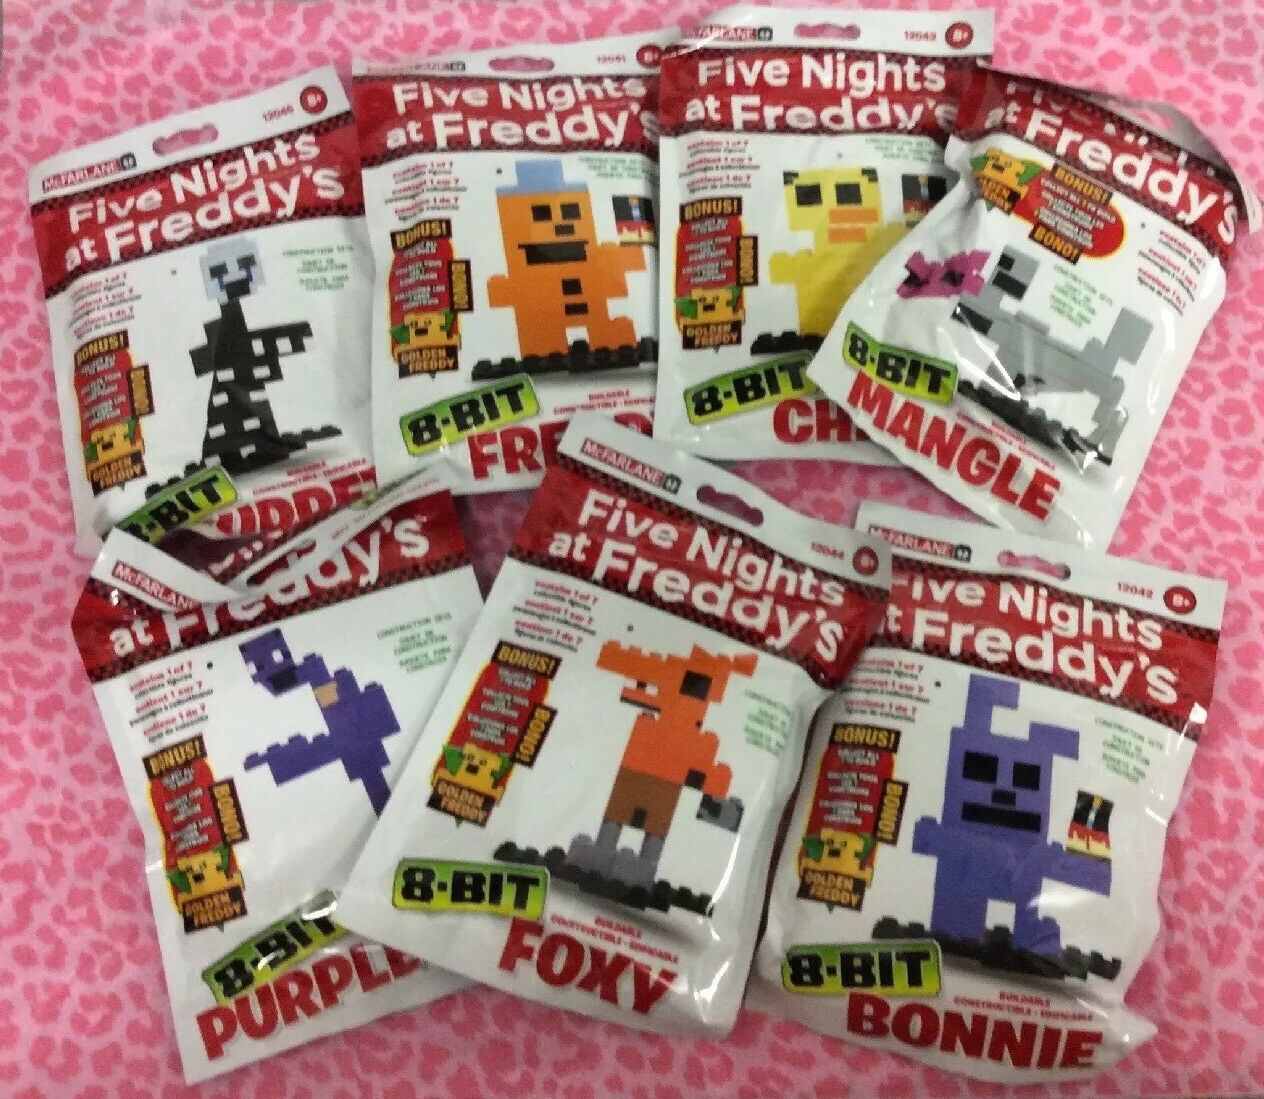 FIVE NIGHTS AT FrotDY'S 8-BIT BUILDABLE FIGURES MCFARLANE - OFFICIAL - Set Of 7